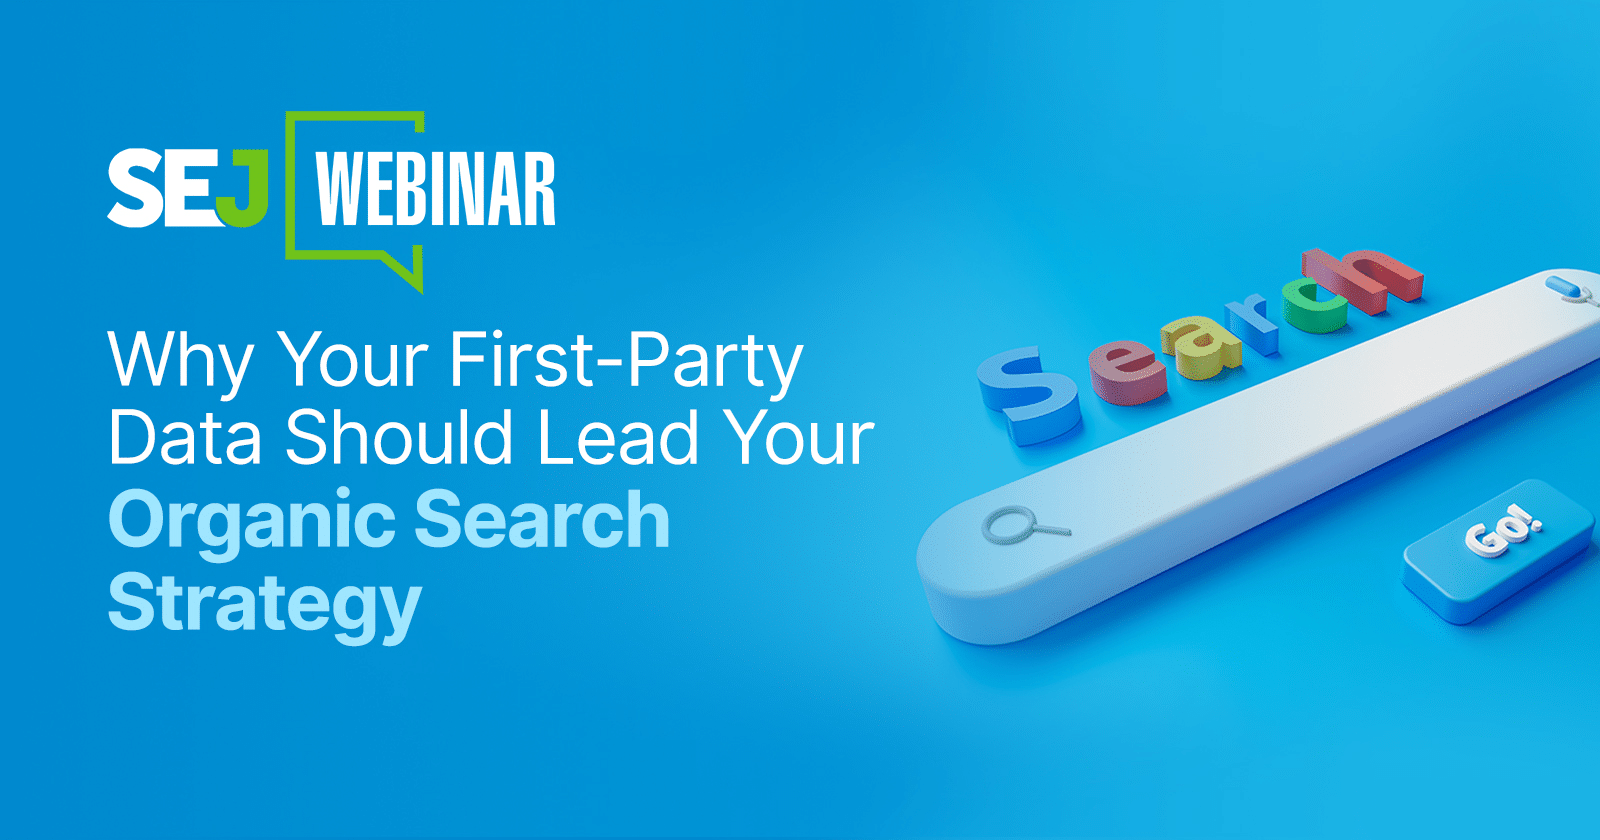 Why First-Party Data Should Lead Your Organic Search Strategy [Webinar] via @sejournal, @lorenbaker